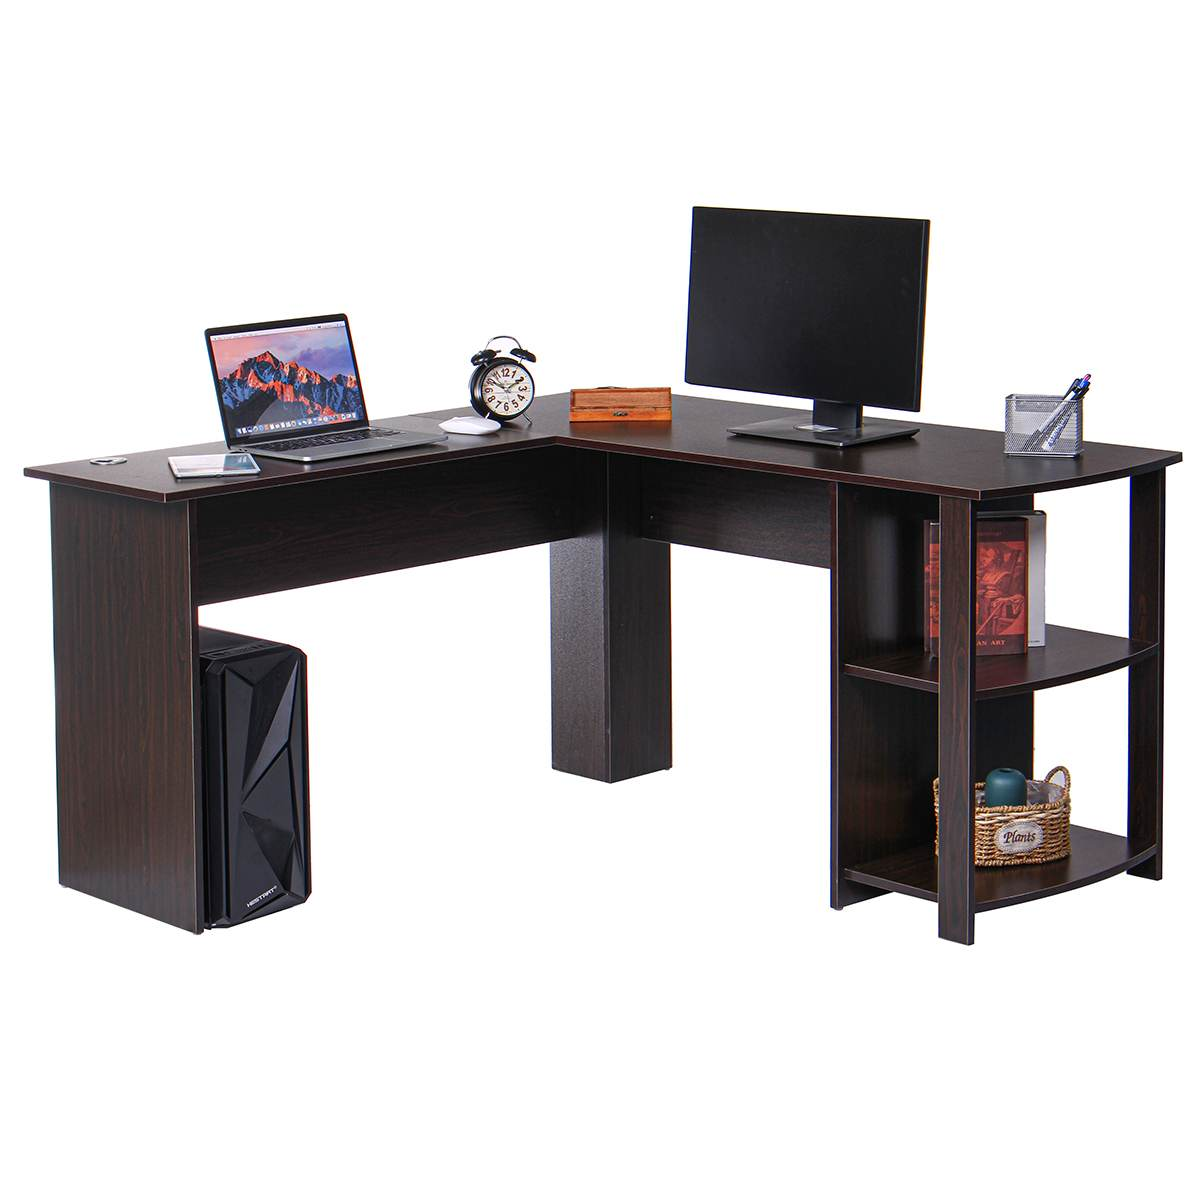 L-Shaped Corner Computer Office Desk With Book Shelves Home Desk Commercial Furniture Table Laptop Table Computer Desk